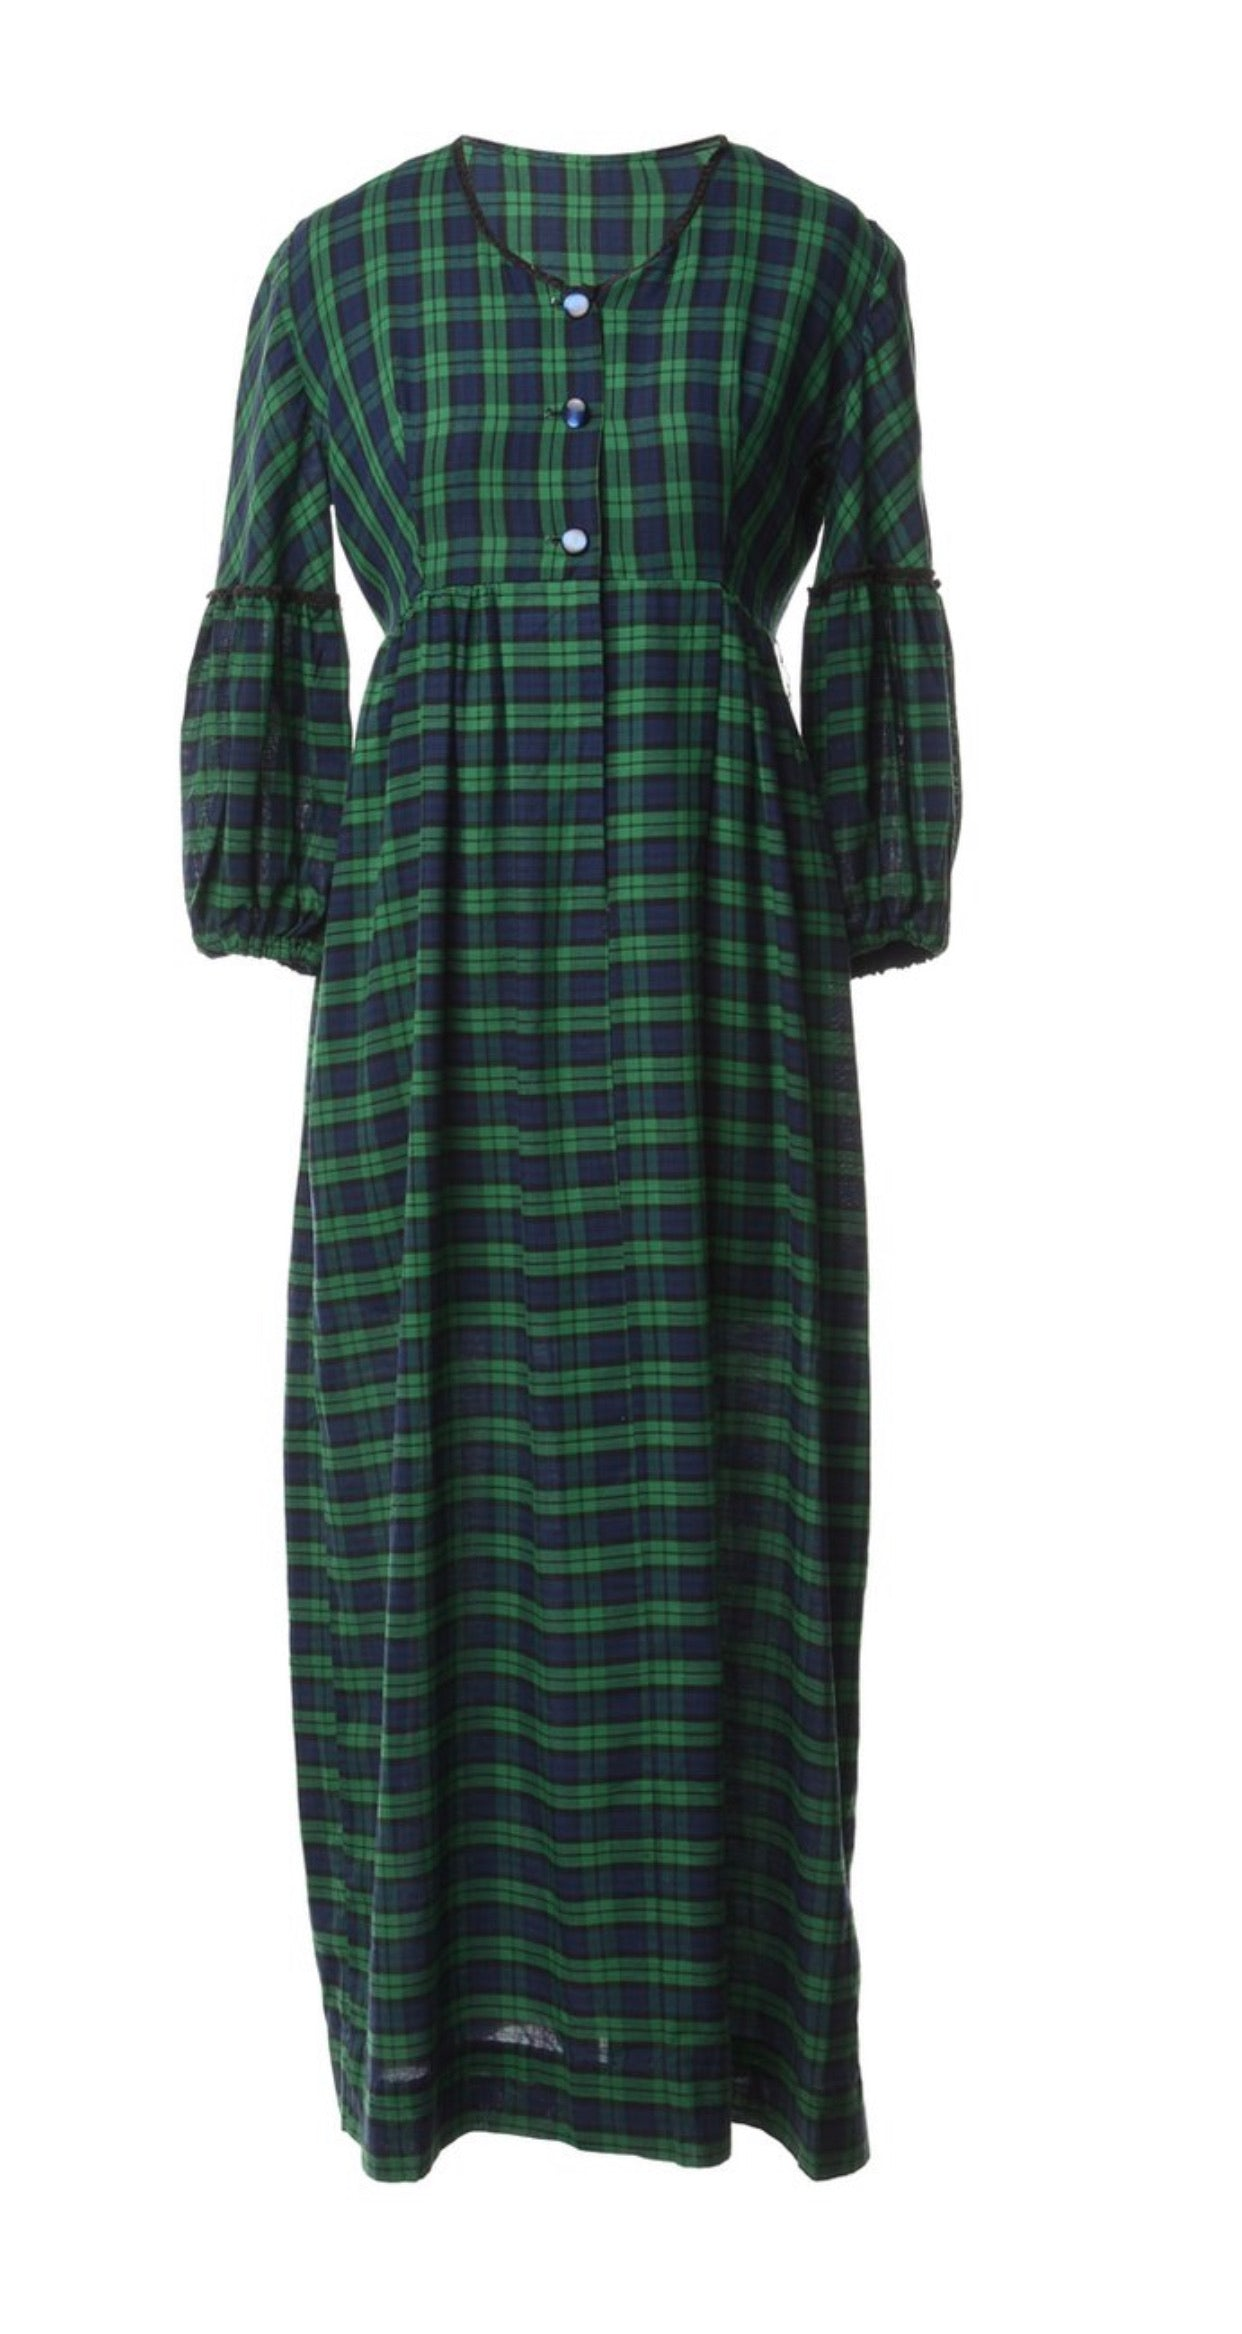 The Mora Checked Maxi Dress